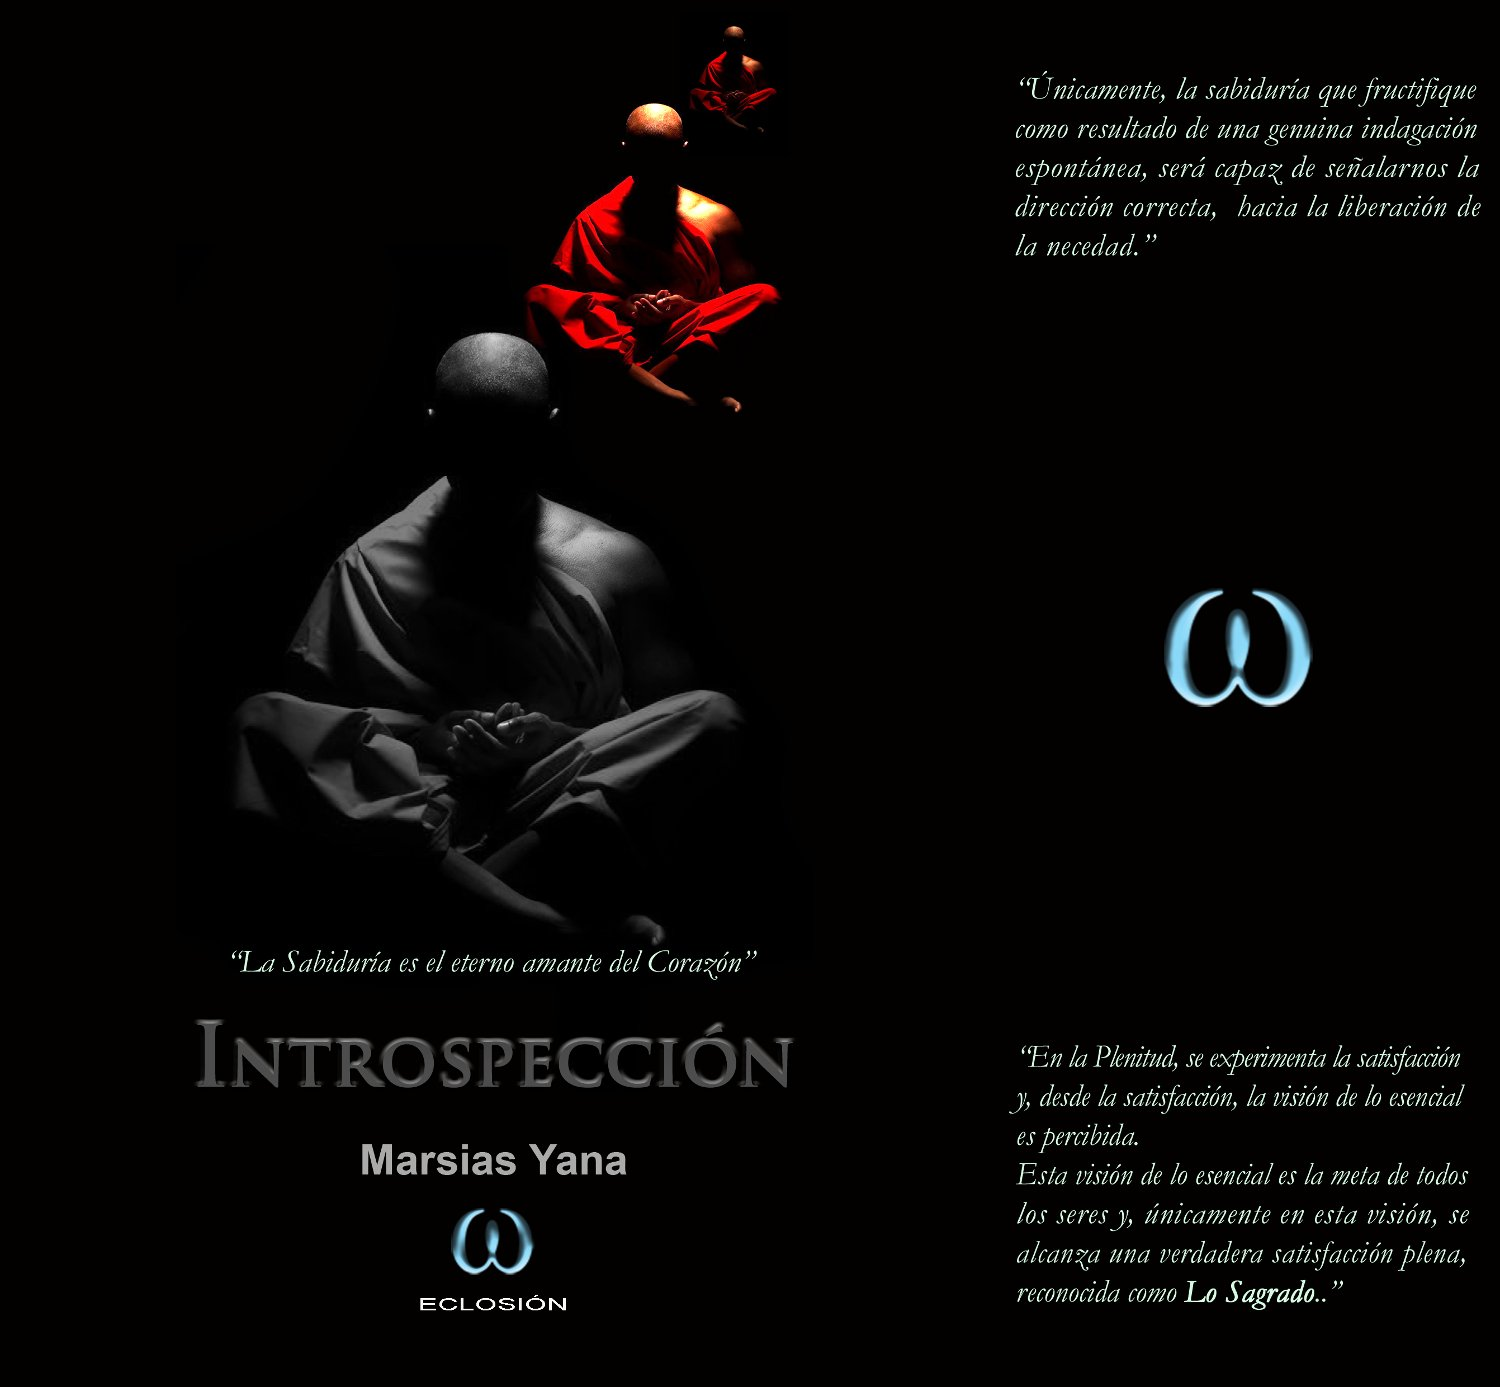 introspeccion 1 - Introspección